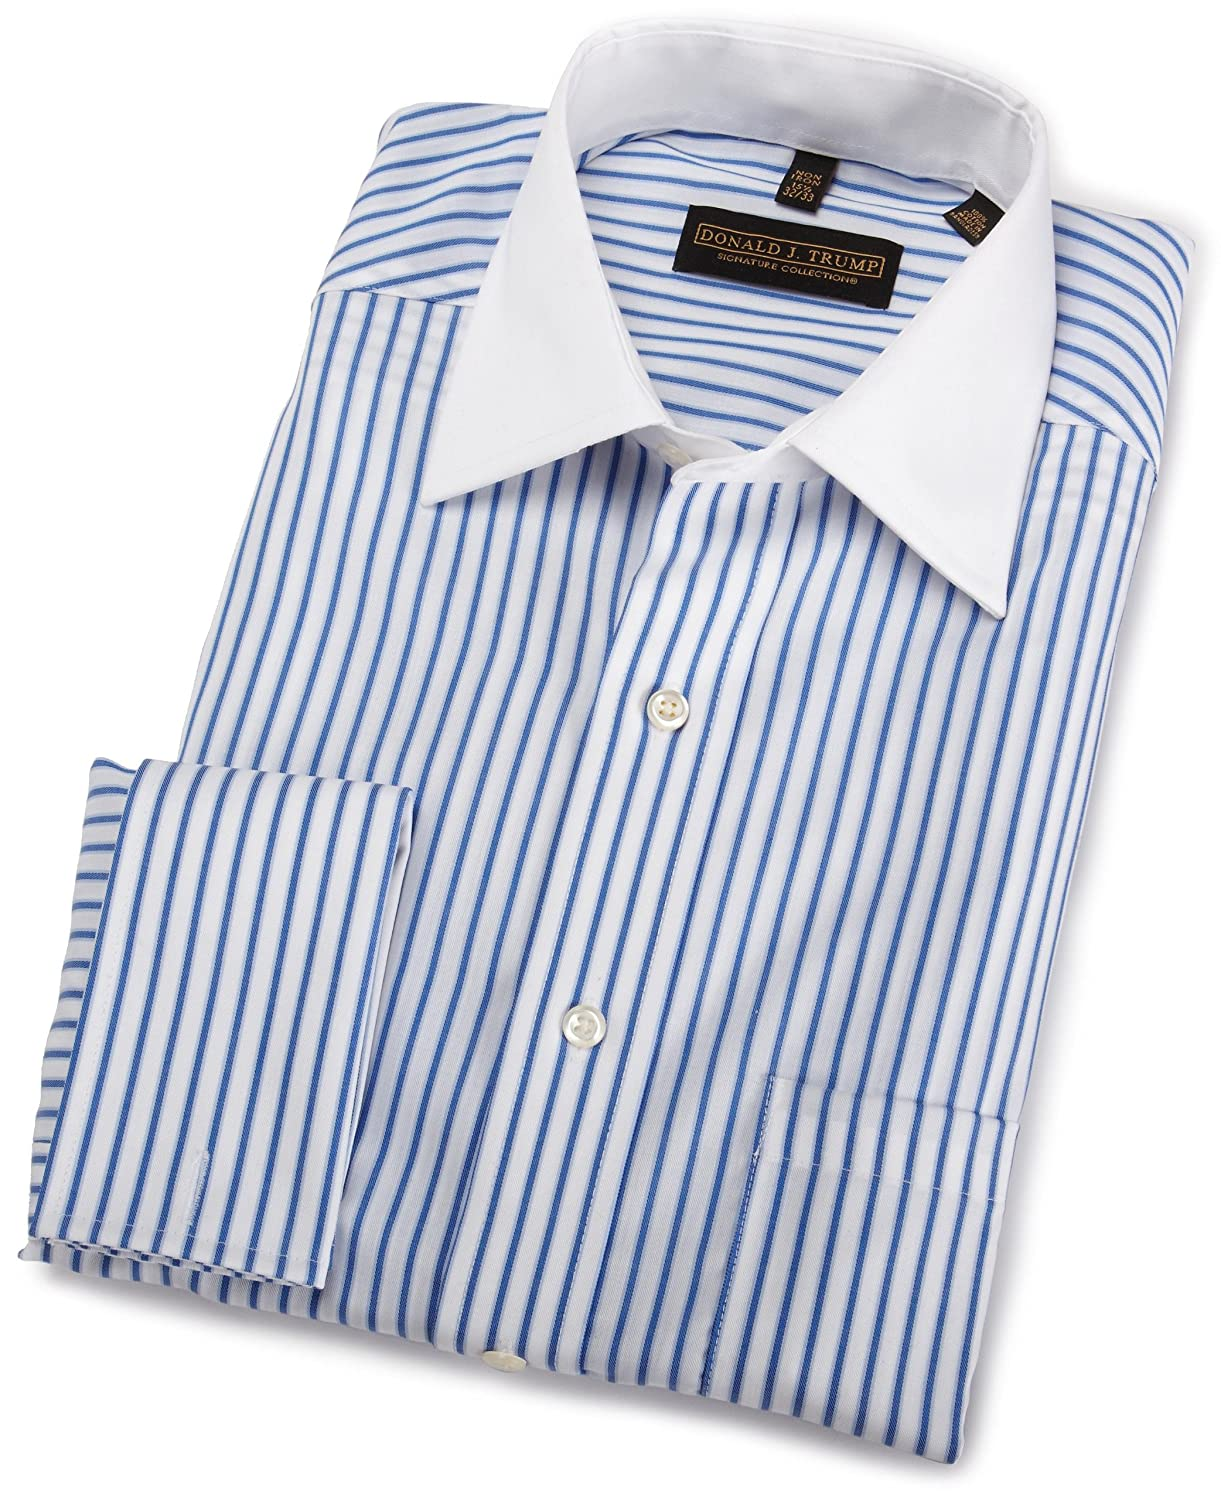 Donald Trump Cotton Twill Striped Shirt